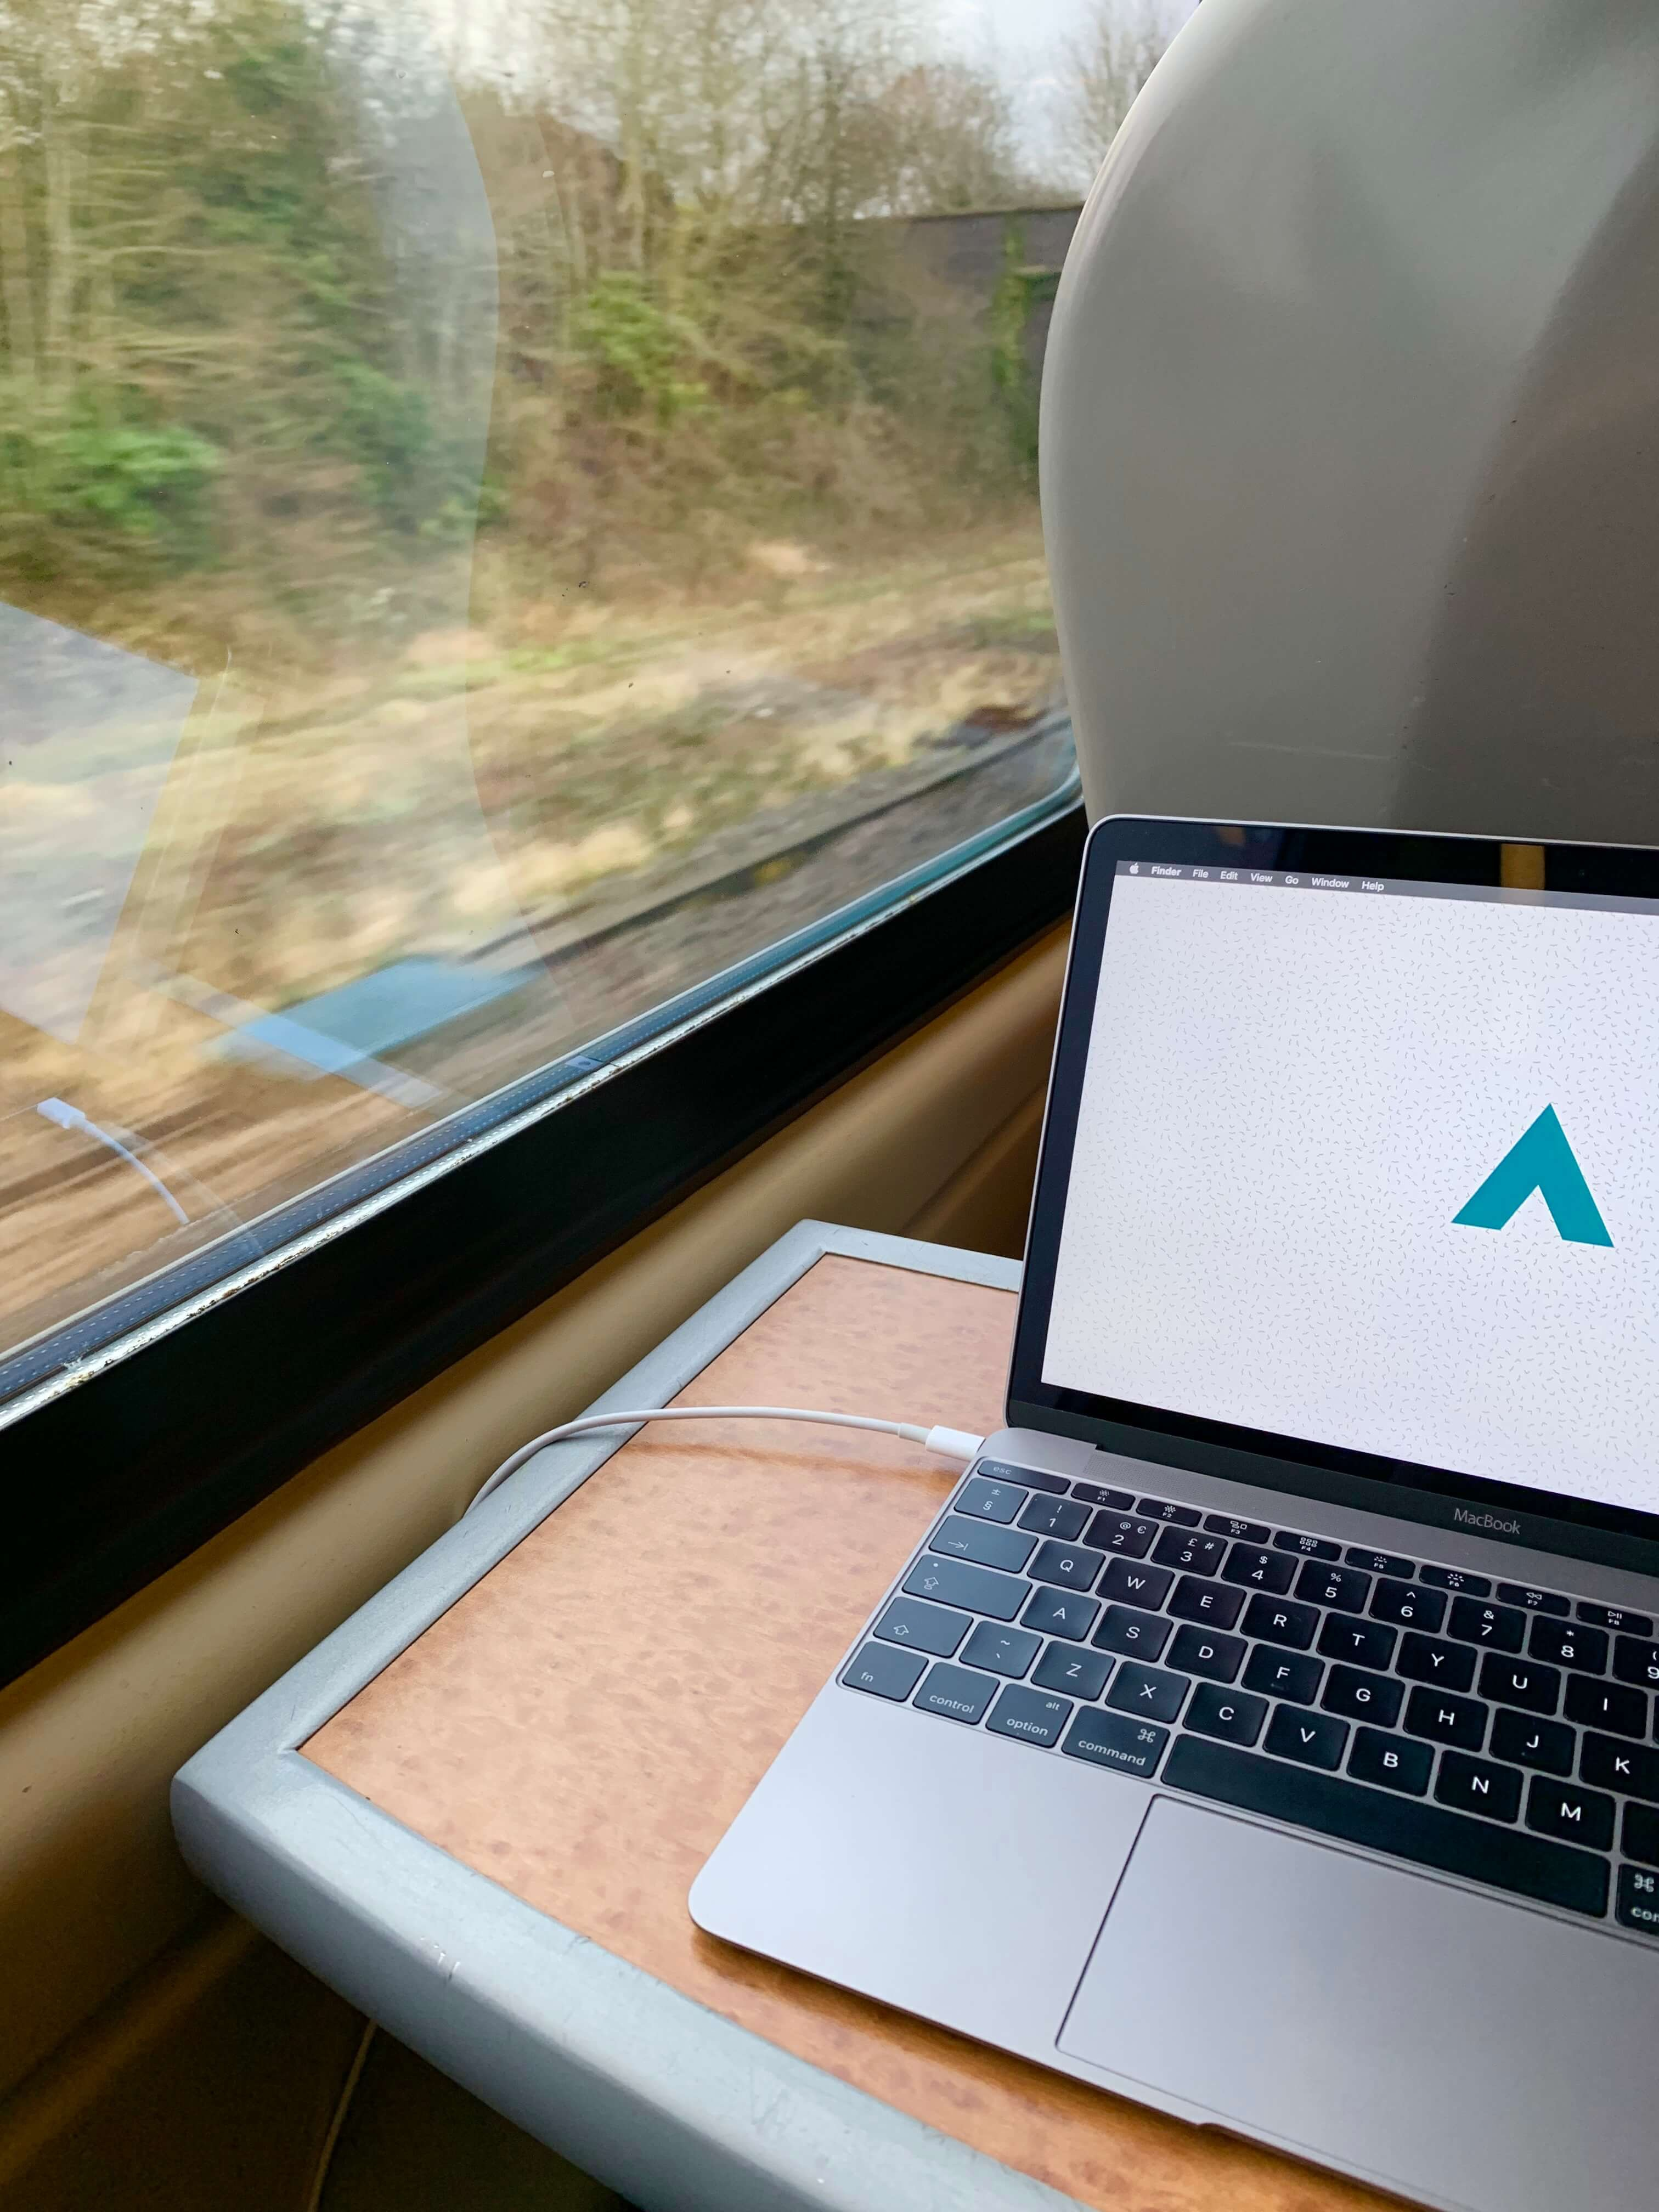 A laptop on a table inside a train